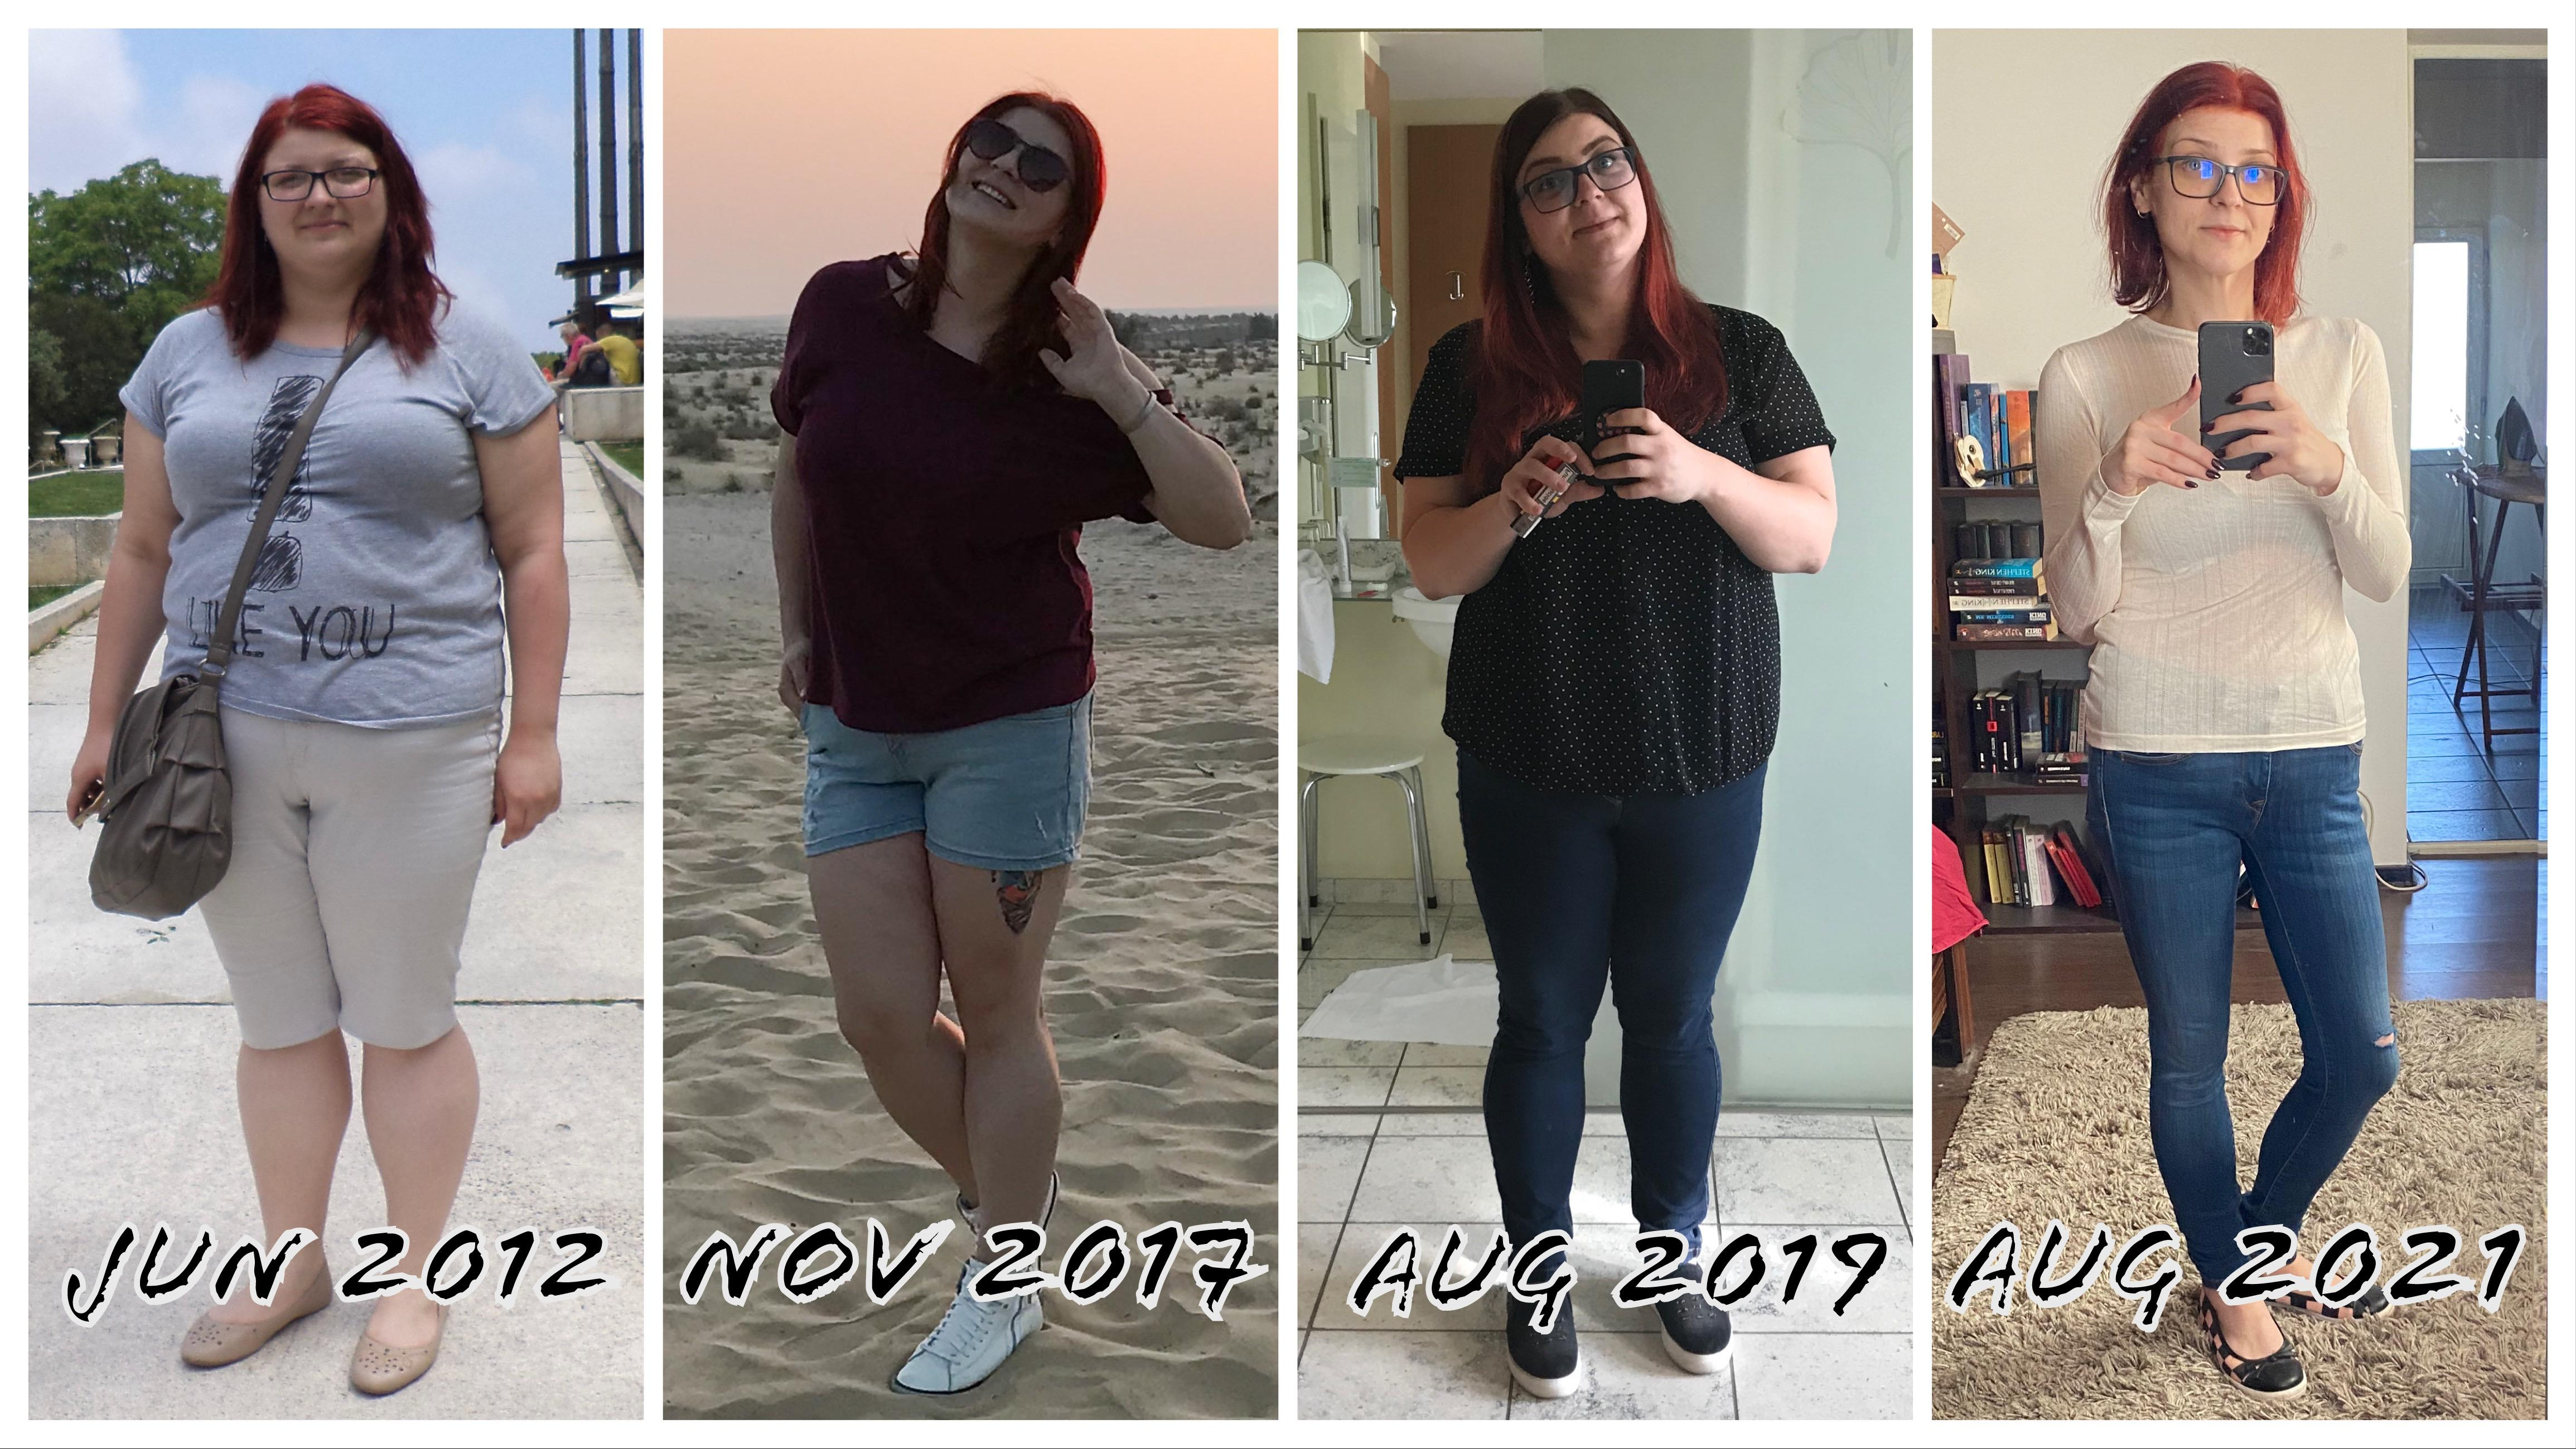 5'6 Female Before and After 88 lbs Weight Loss 253 lbs to 165 lbs